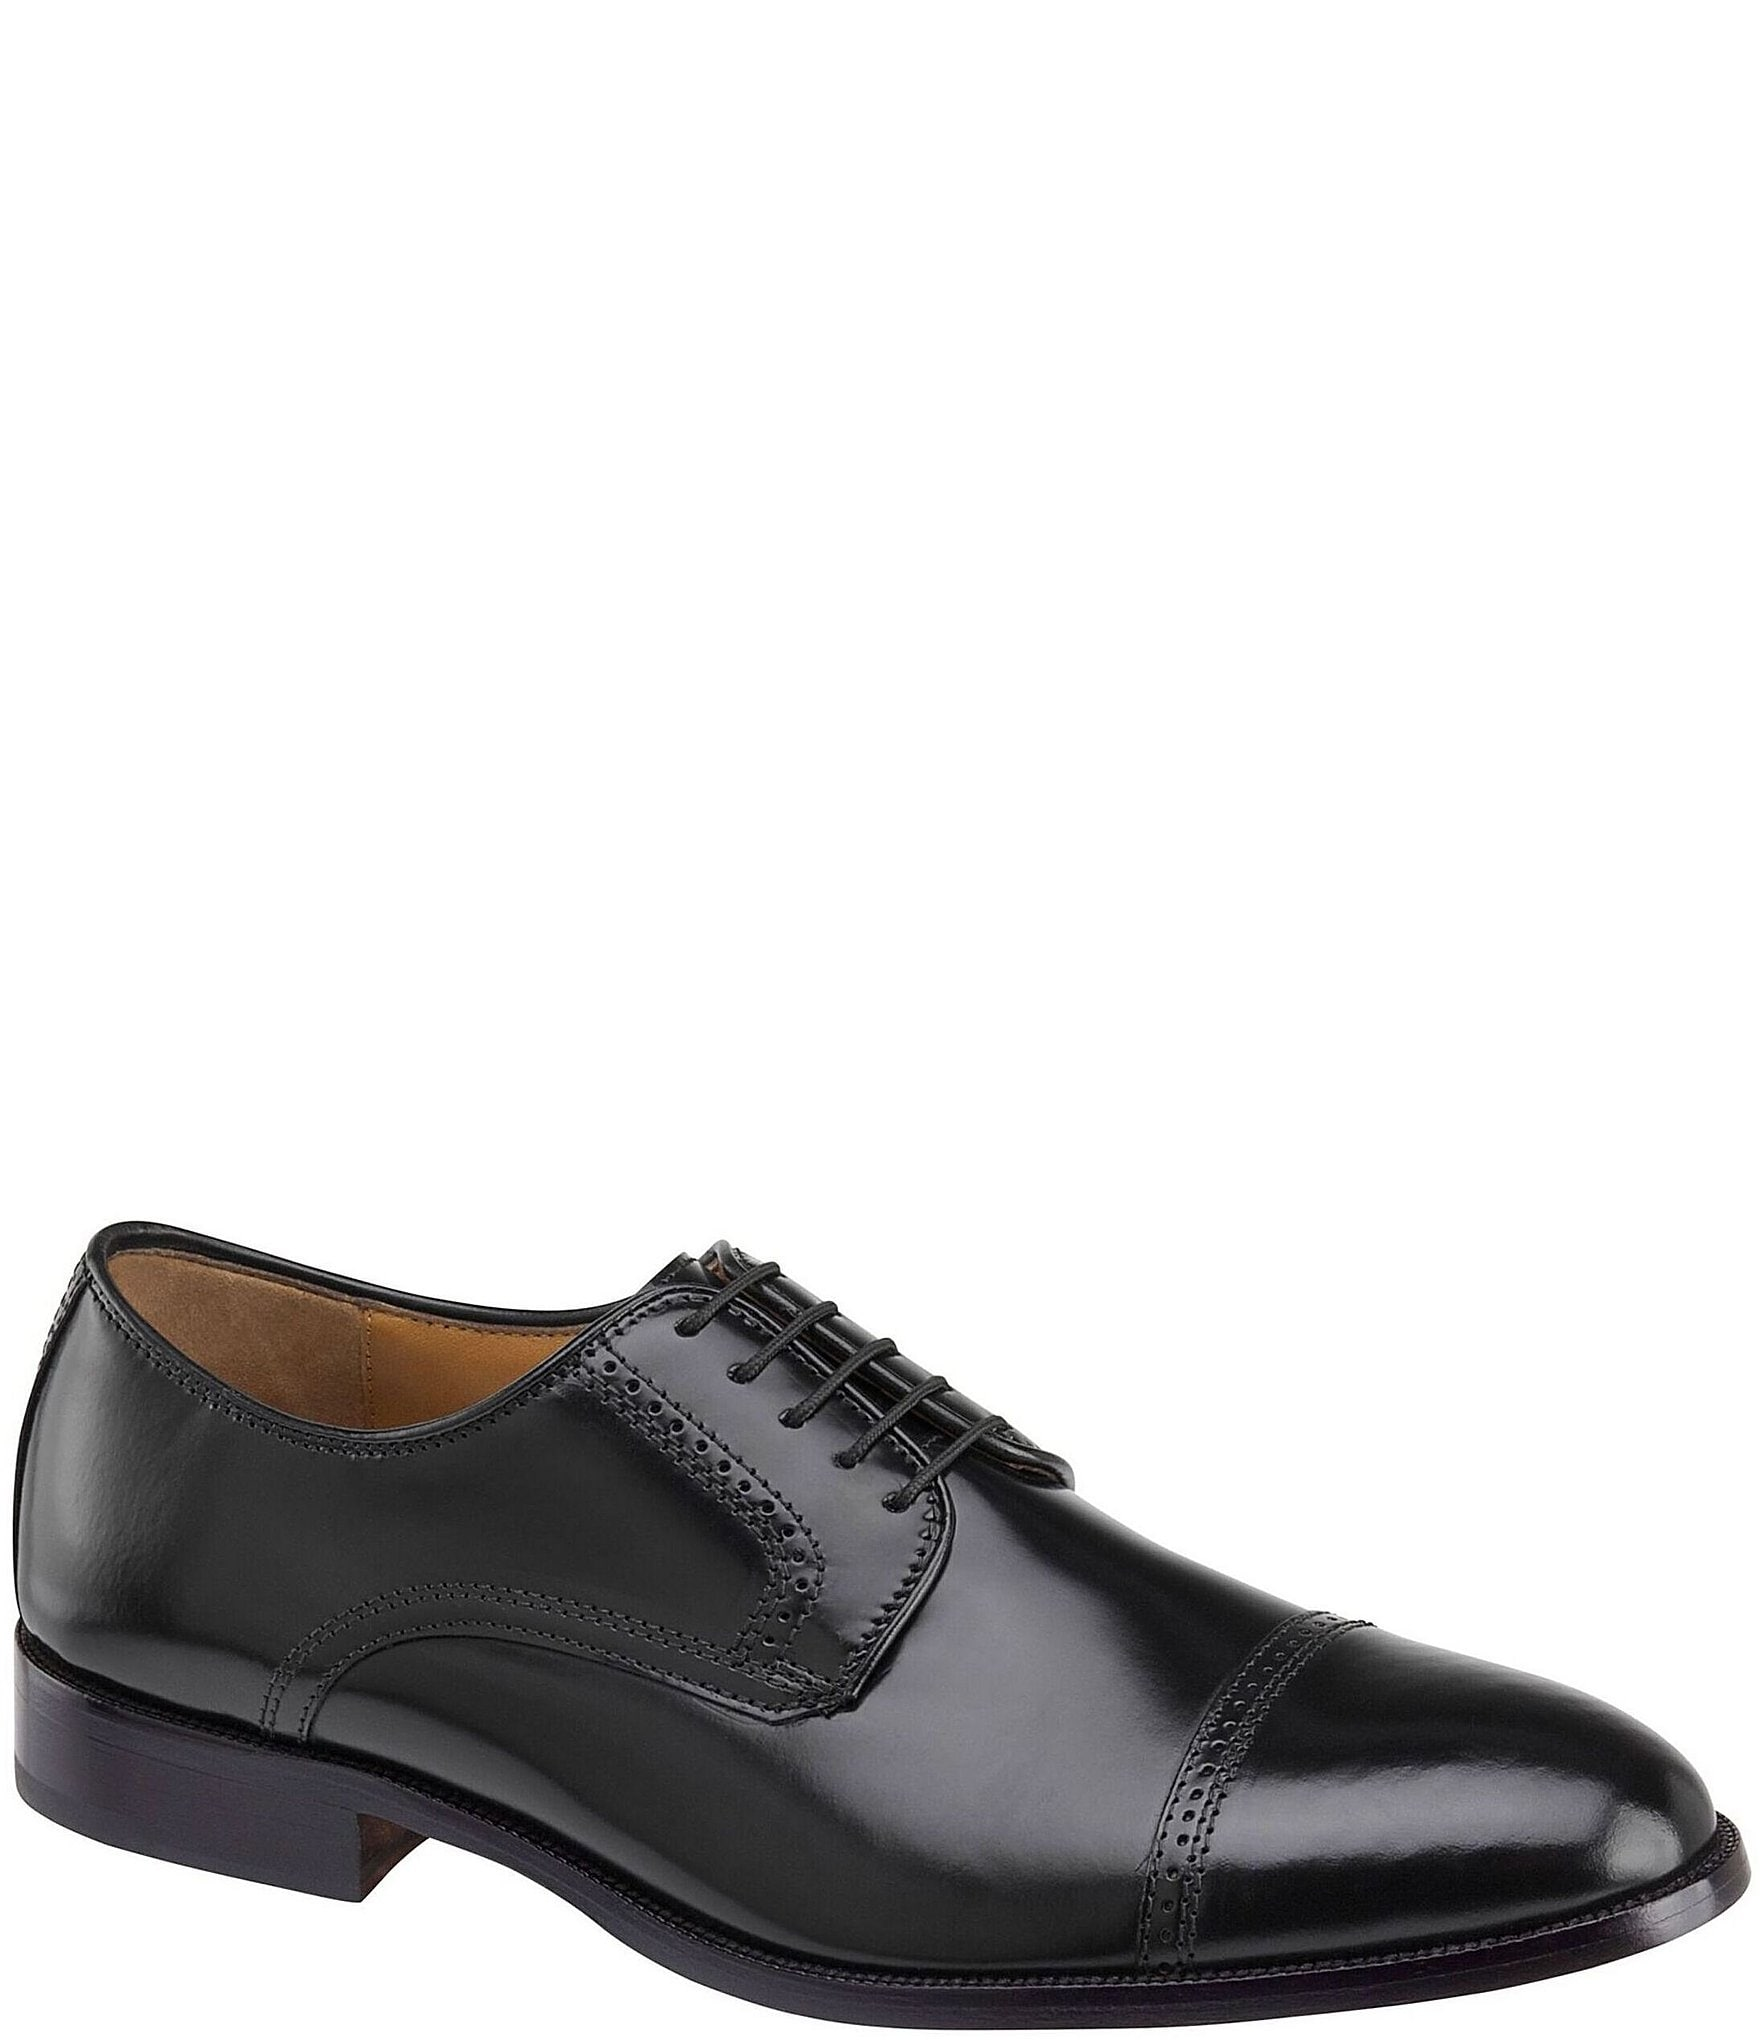 Men's Johnston Murphy 'Shaler' Apron Toe Derby 617682 2017 new style online sales